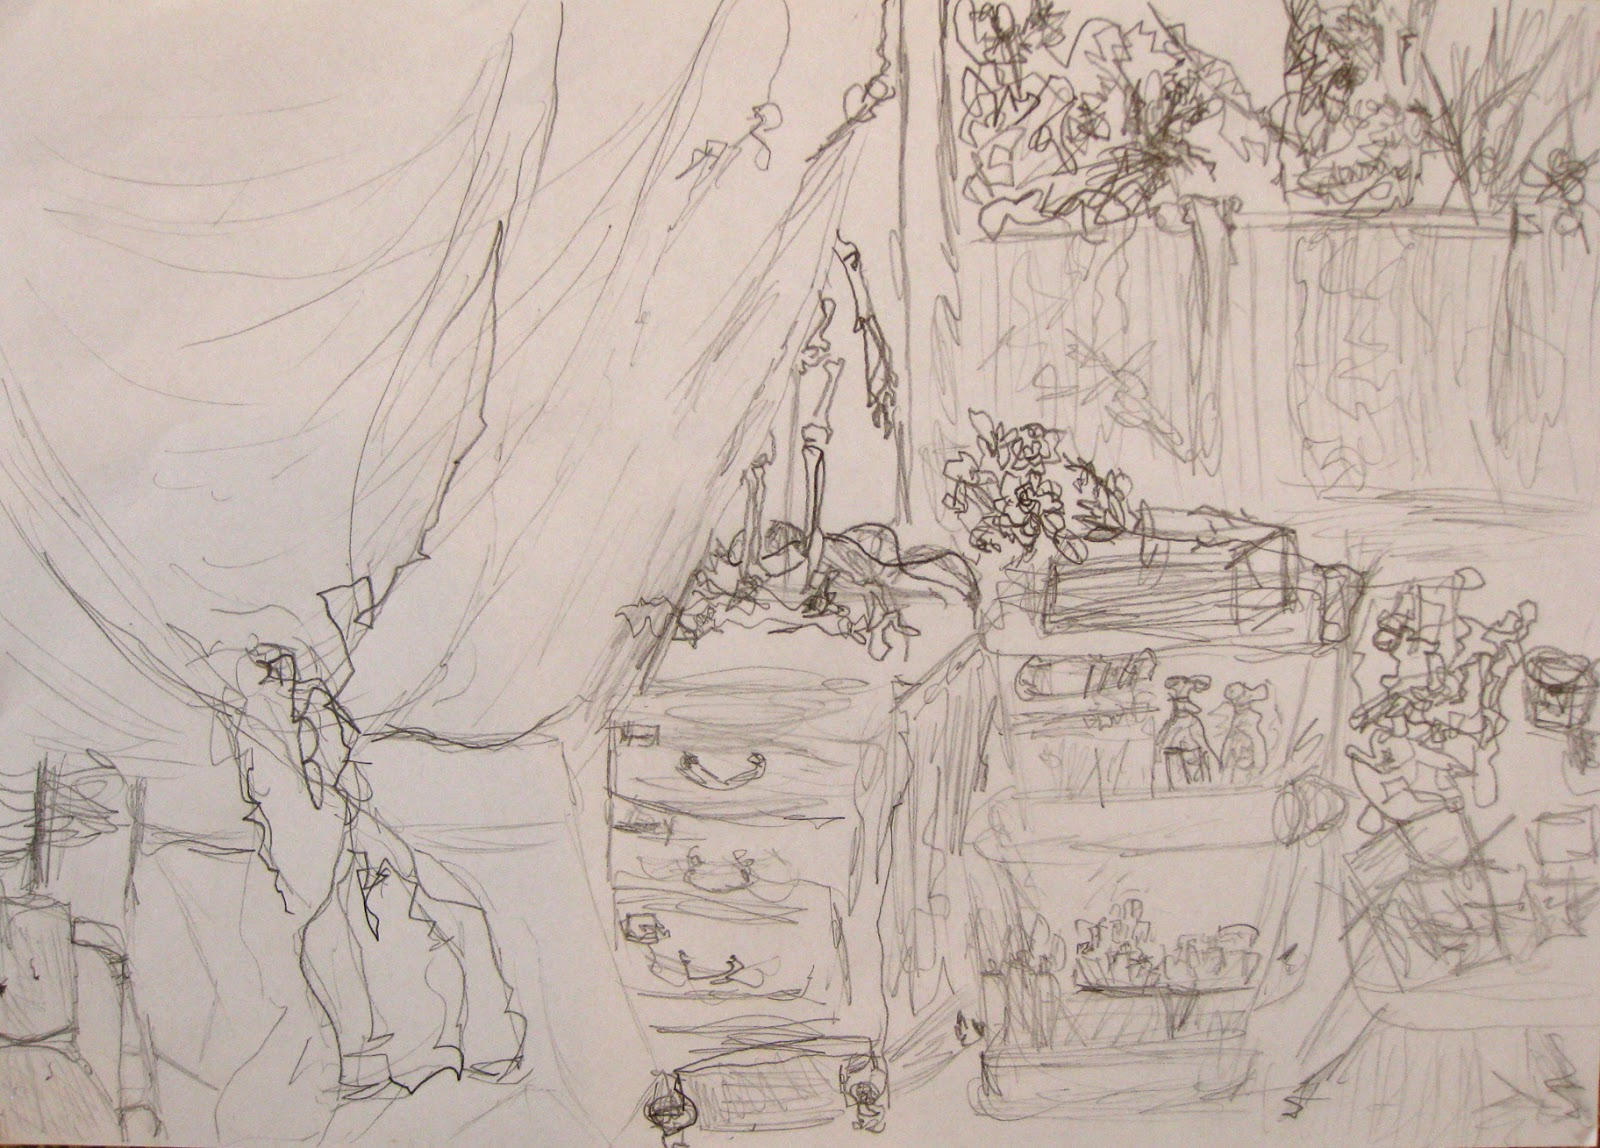 Jessica's expressive line drawing of the interior of the studio